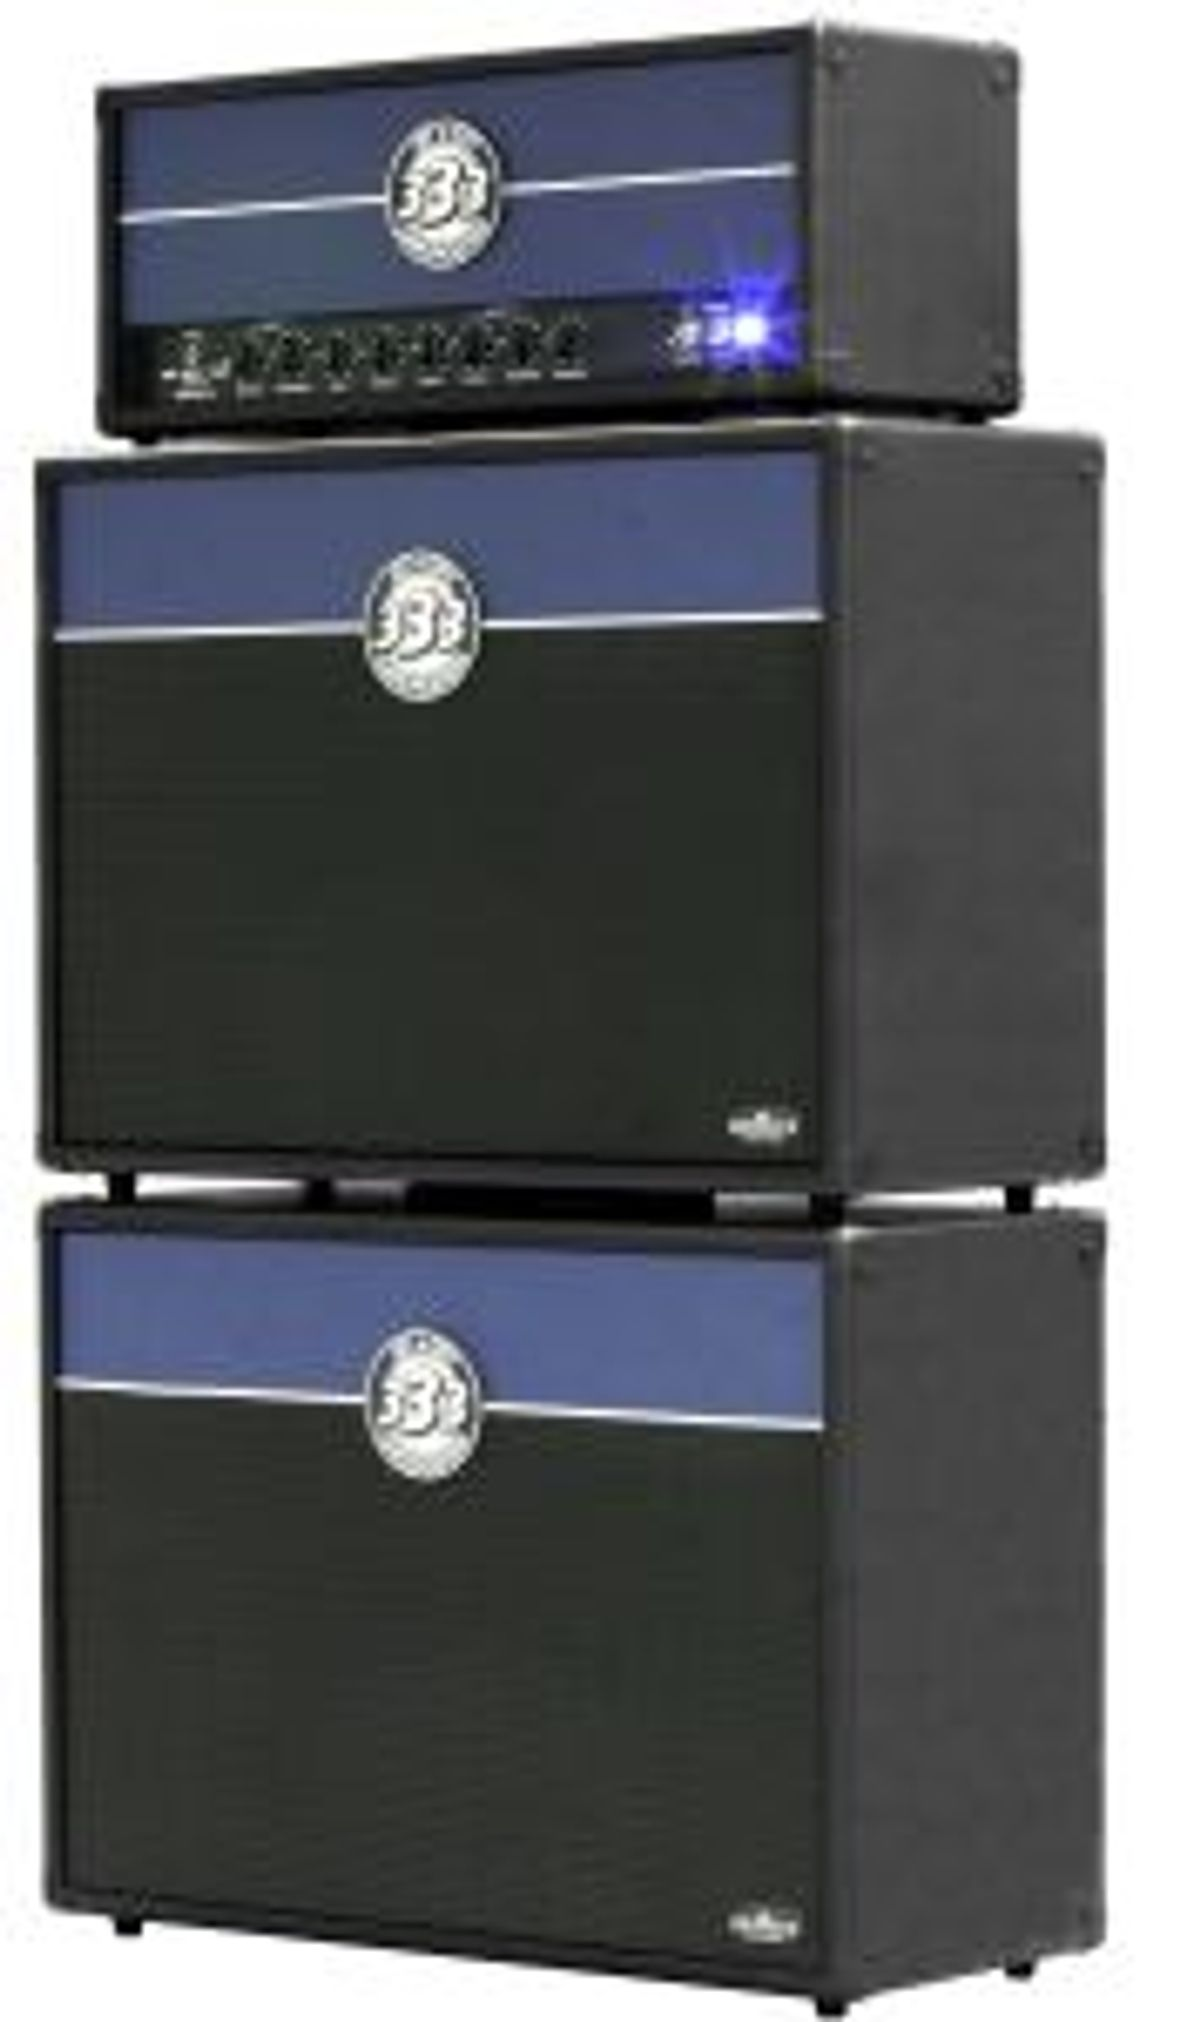 Jet City Amplification Debuts First Amps